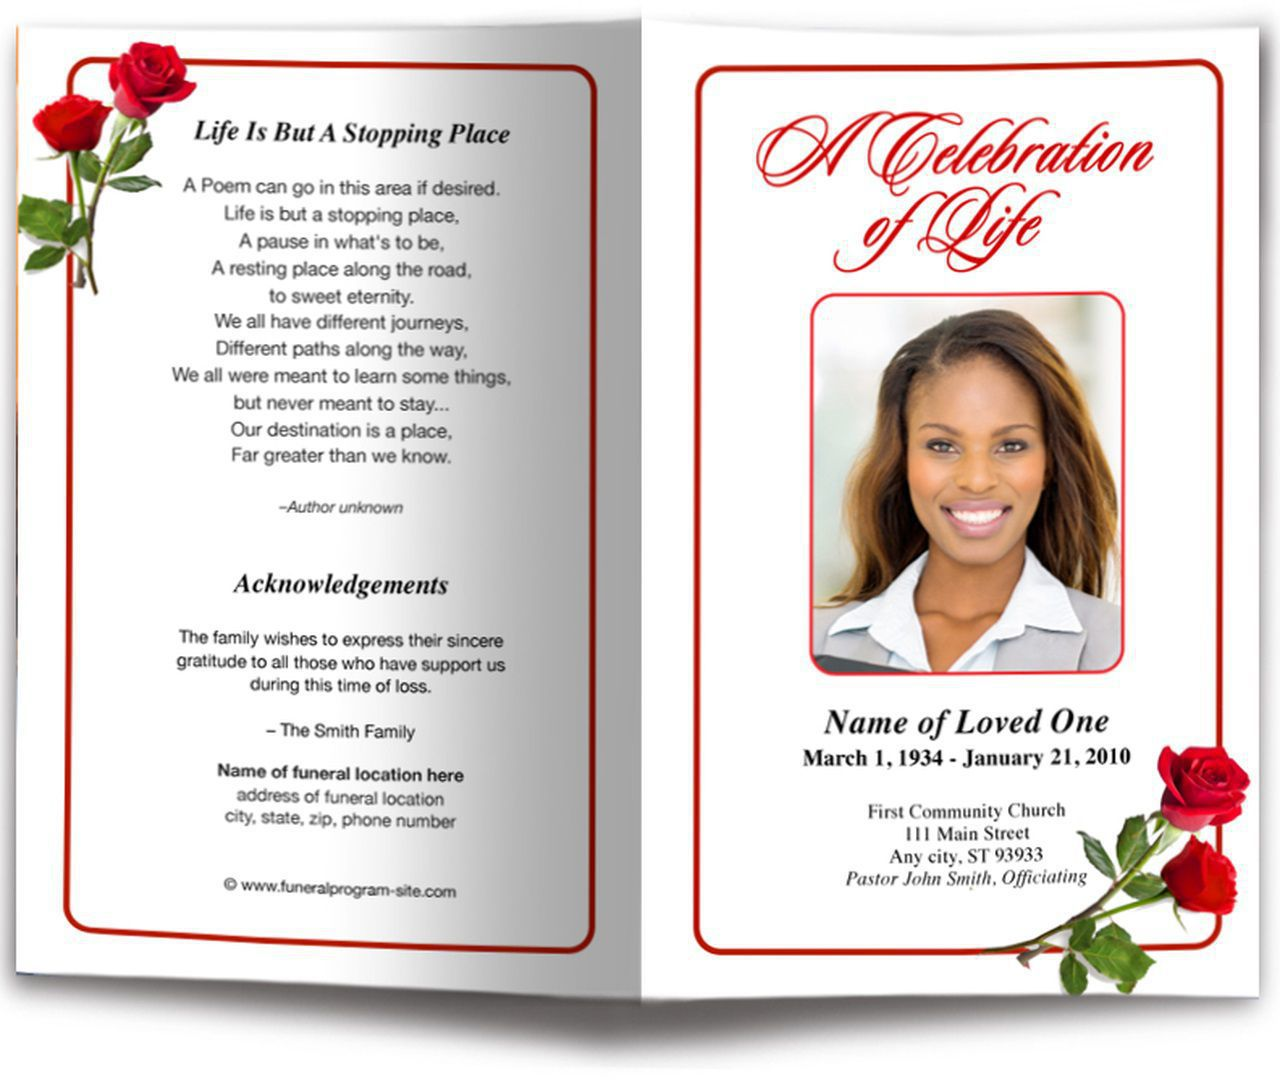 001 Exceptional Template For Funeral Program On Word Picture  2010 Free Sample WordingFull